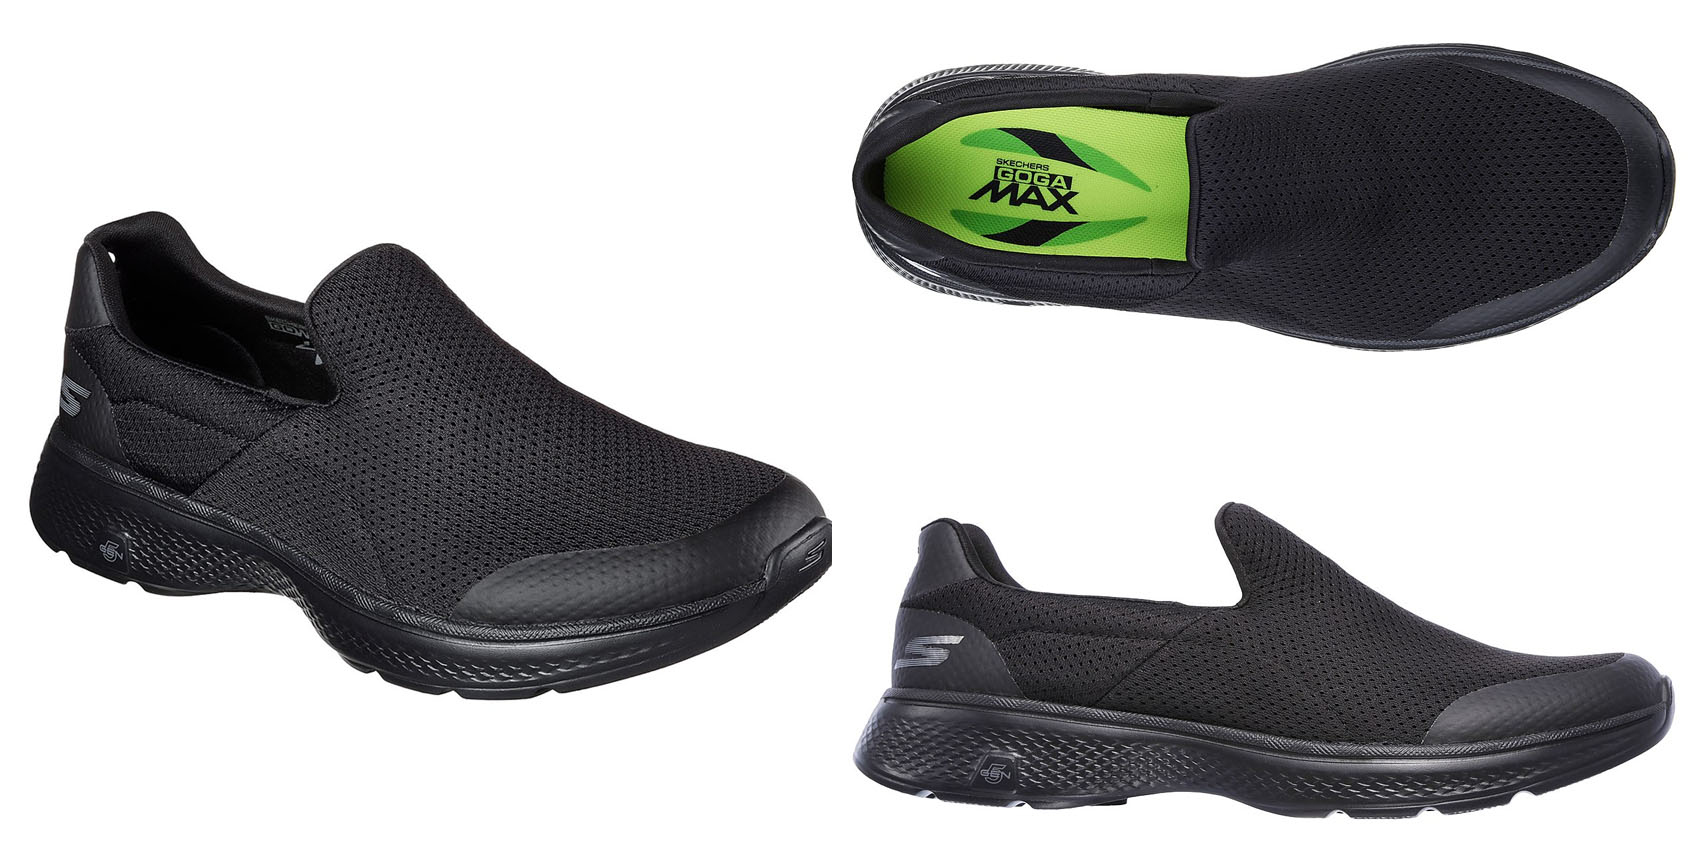 Get walking with Sketchers Men's Performance Shoes for $31.50 shipped (Reg. $40)